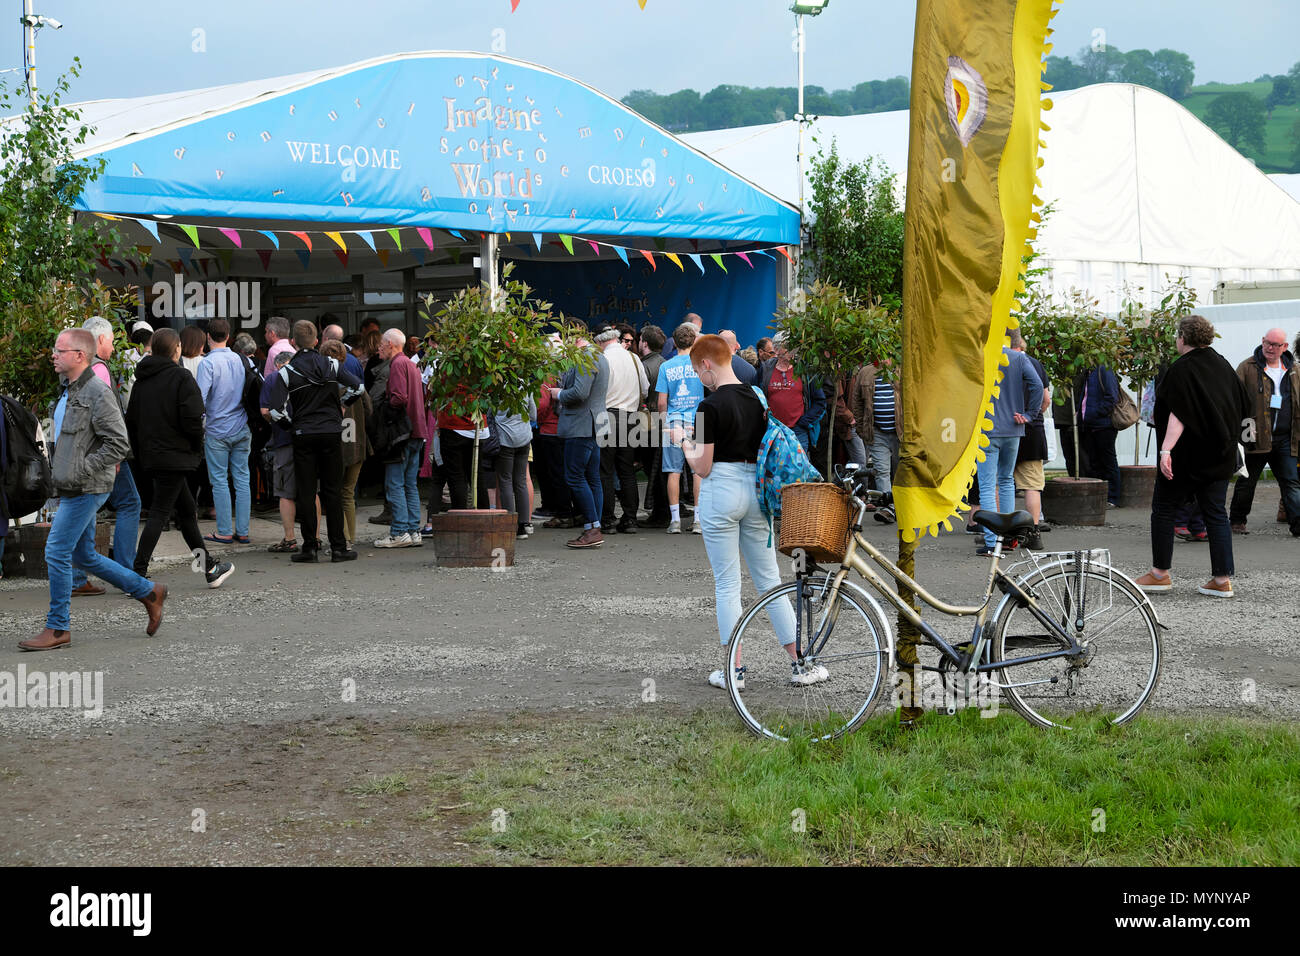 Hay Festival entrance with bicycle, banner and visitors outside, woman looking at programme Saturday evening 26 May 2018 Hay-on-Wye UK  KATHY DEWITT Stock Photo